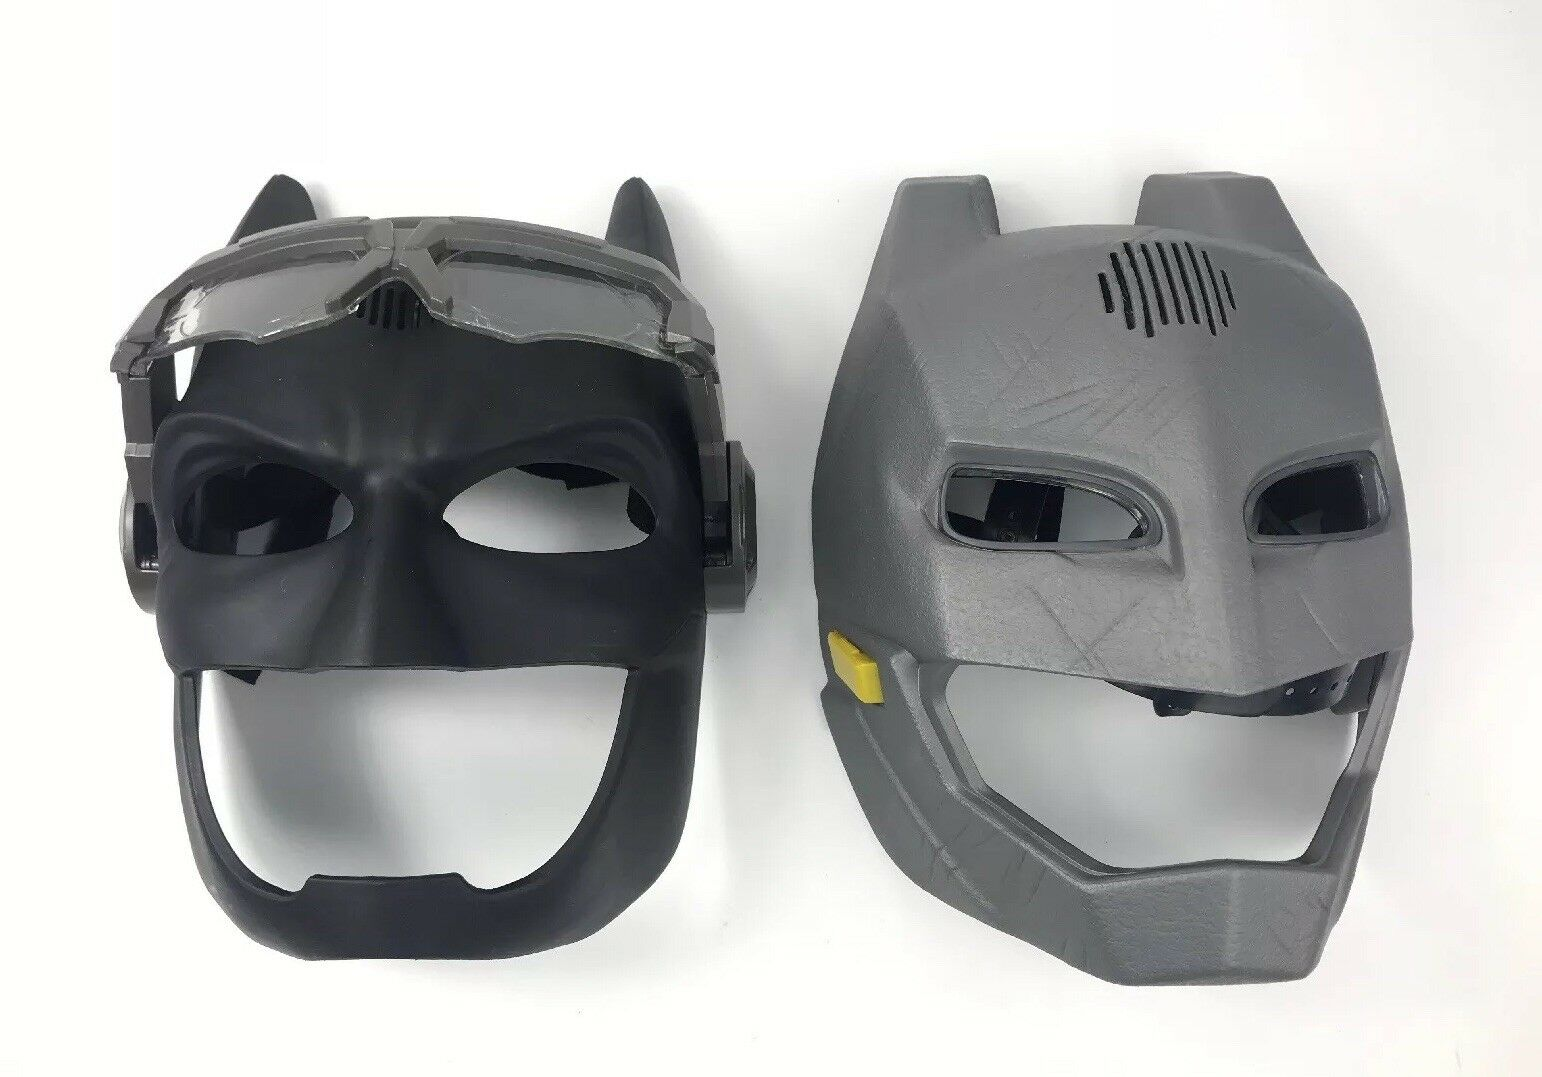 Batman v Superman and Batman Justice League Lot of 2X Voice Changer Masks Mattel